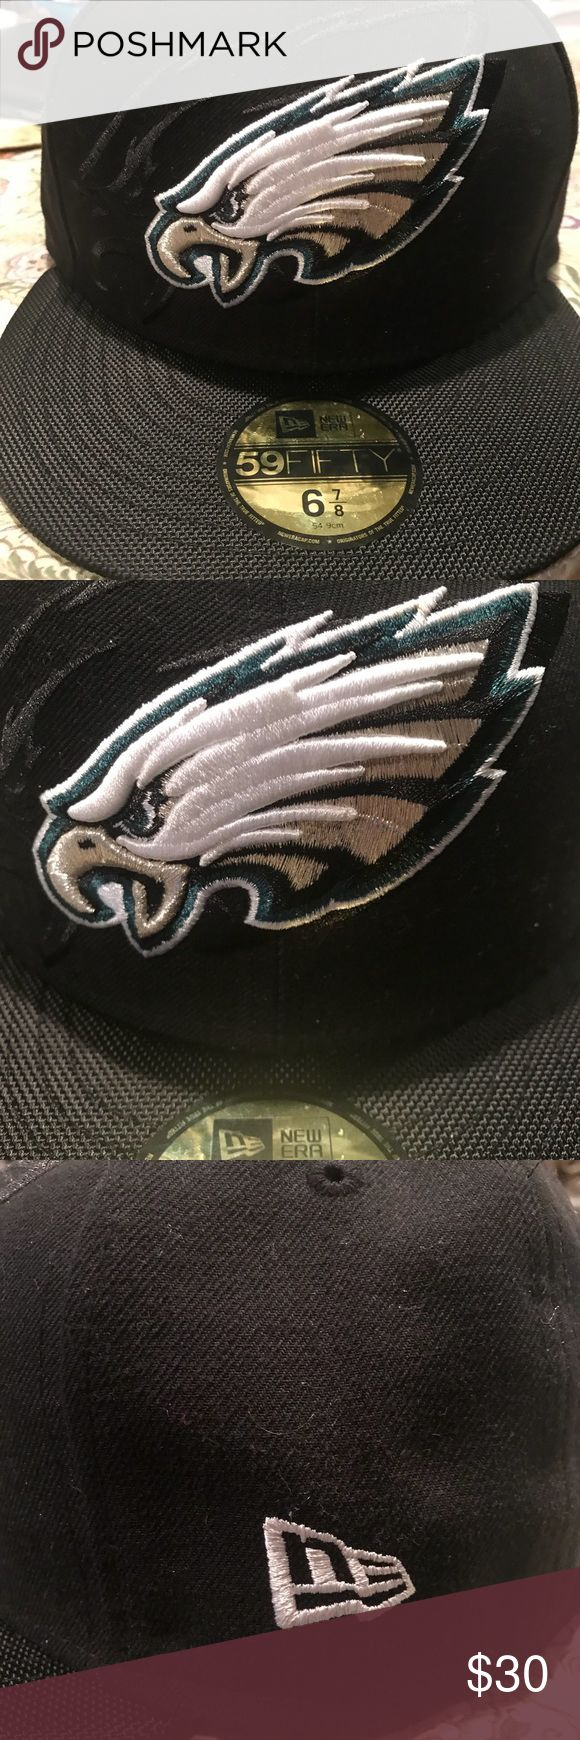 Philadelphia Eagles New Era Fitted Hat Men's Philadelphia Eagles New Era Black On-Field Low Crown 59FIFTY Fitted Hat size 6 7/8 New Era Accessories Hats